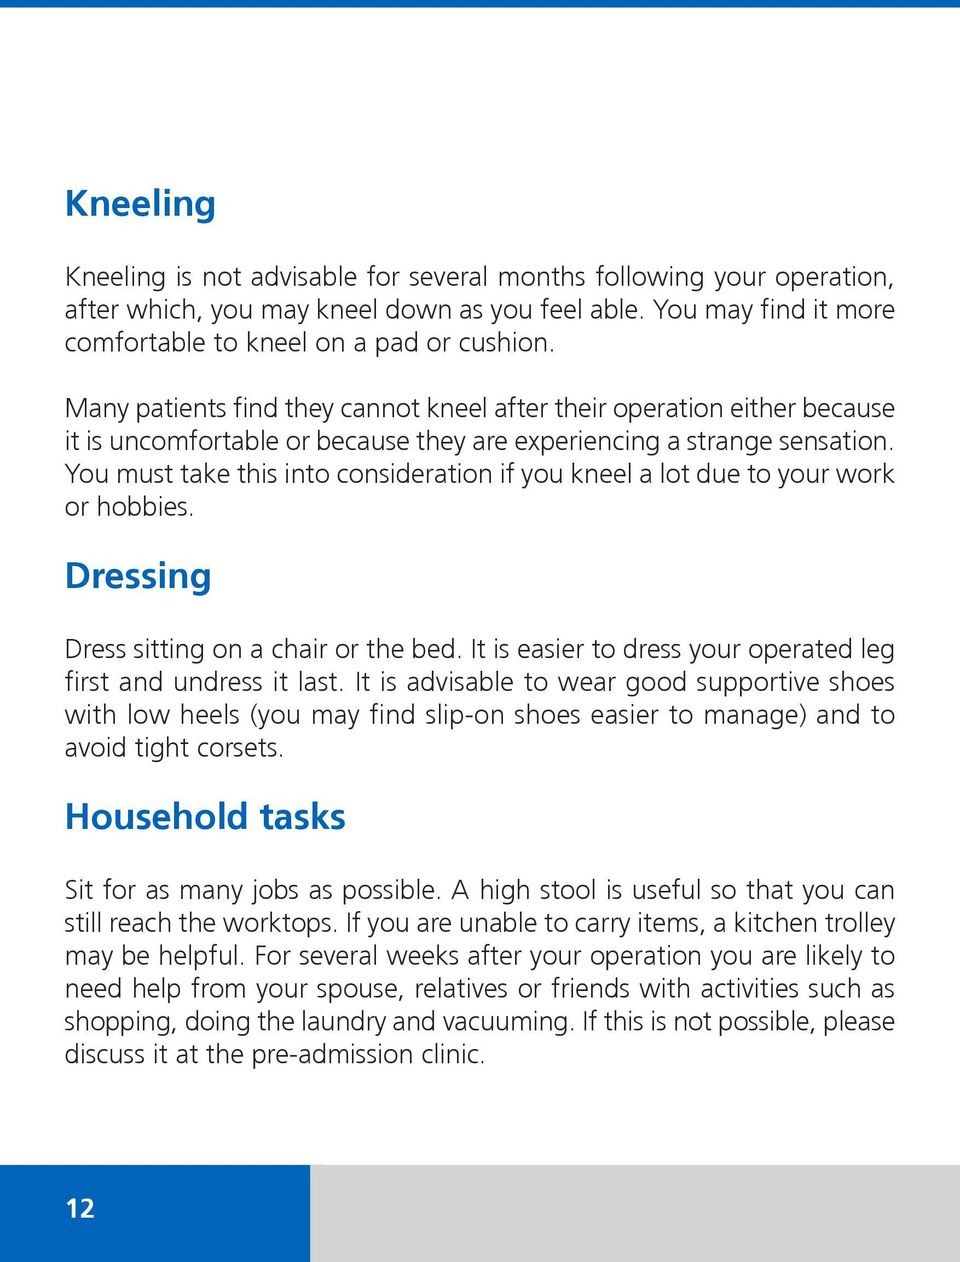 You must take this into consideration if you kneel a lot due to your work or hobbies. Dressing Dress sitting on a chair or the bed. It is easier to dress your operated leg first and undress it last.